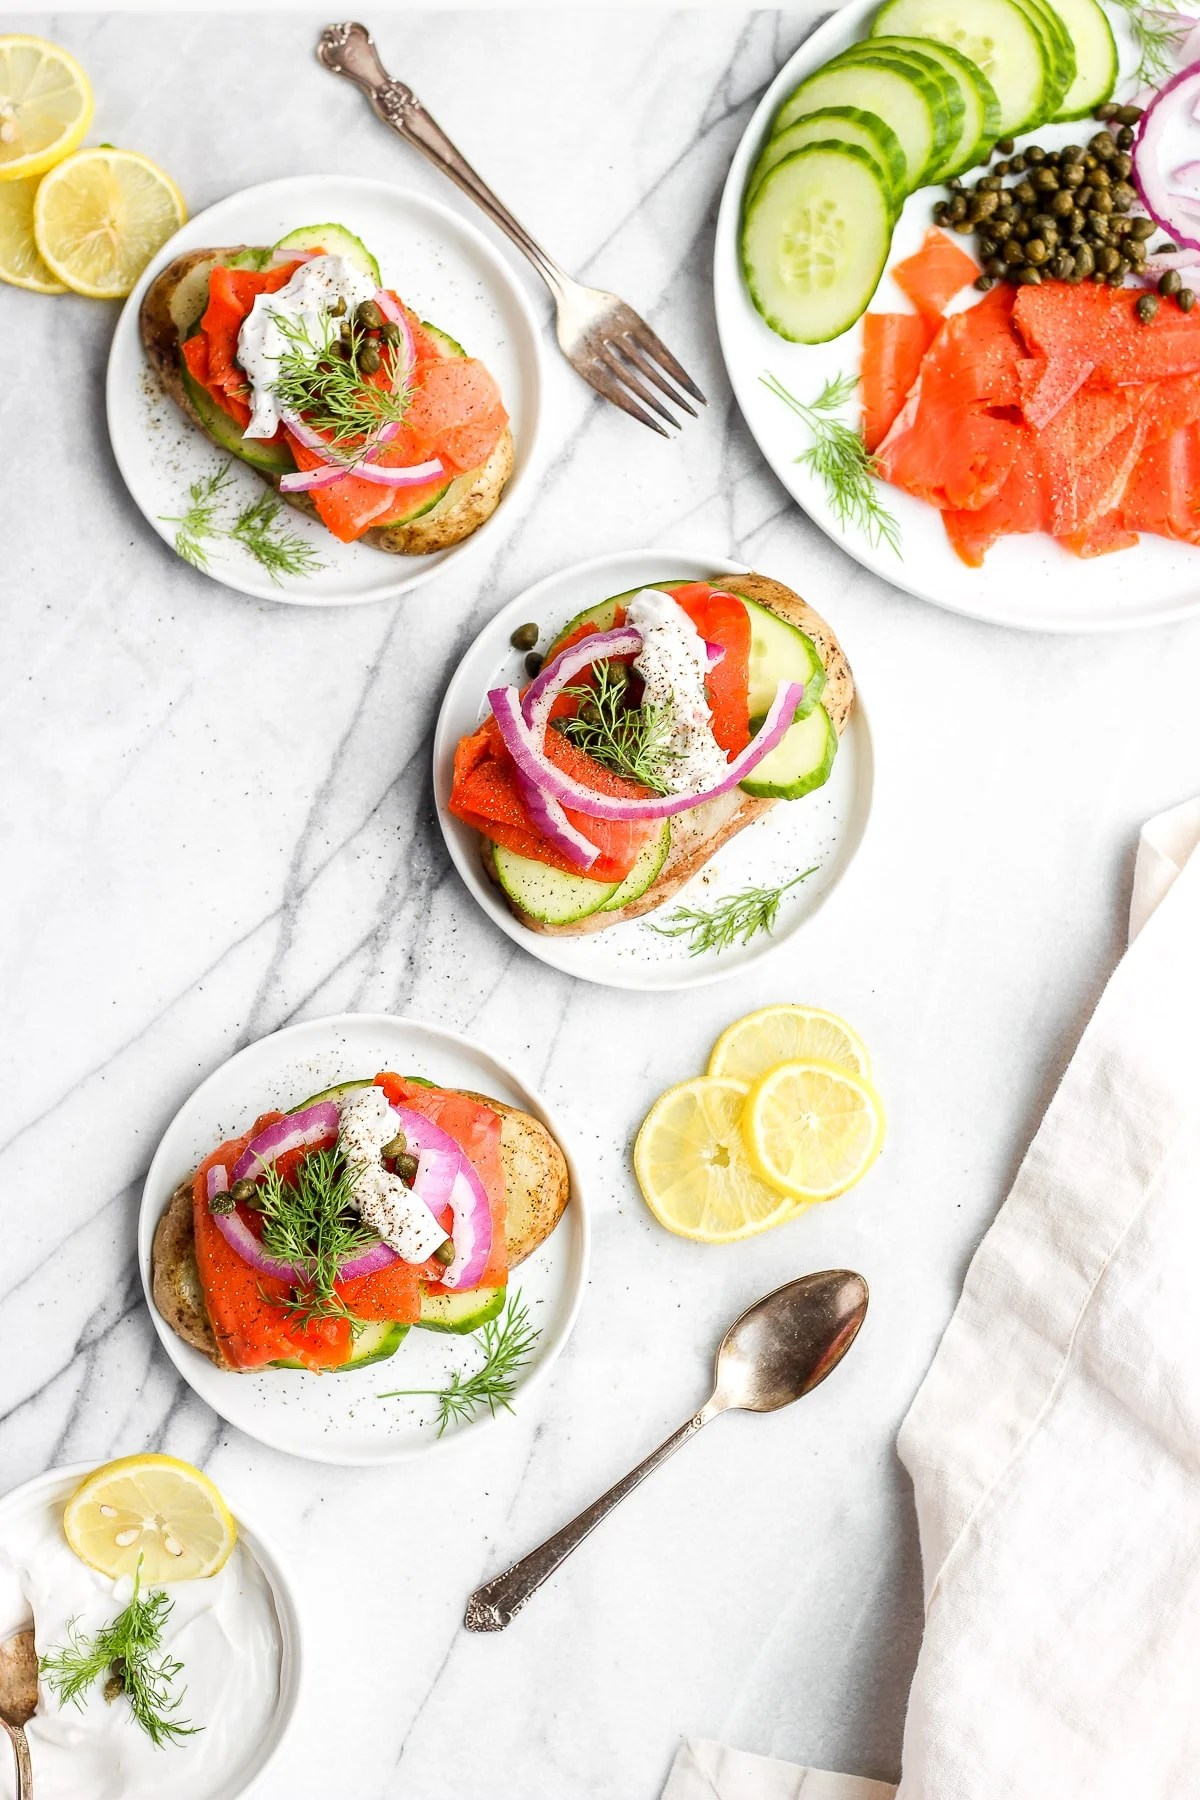 Light and Delicious Lox Breakfast Toast - the perfect eggless breakfast that is Whole30 and Paleo! #whole30recipes #paleo